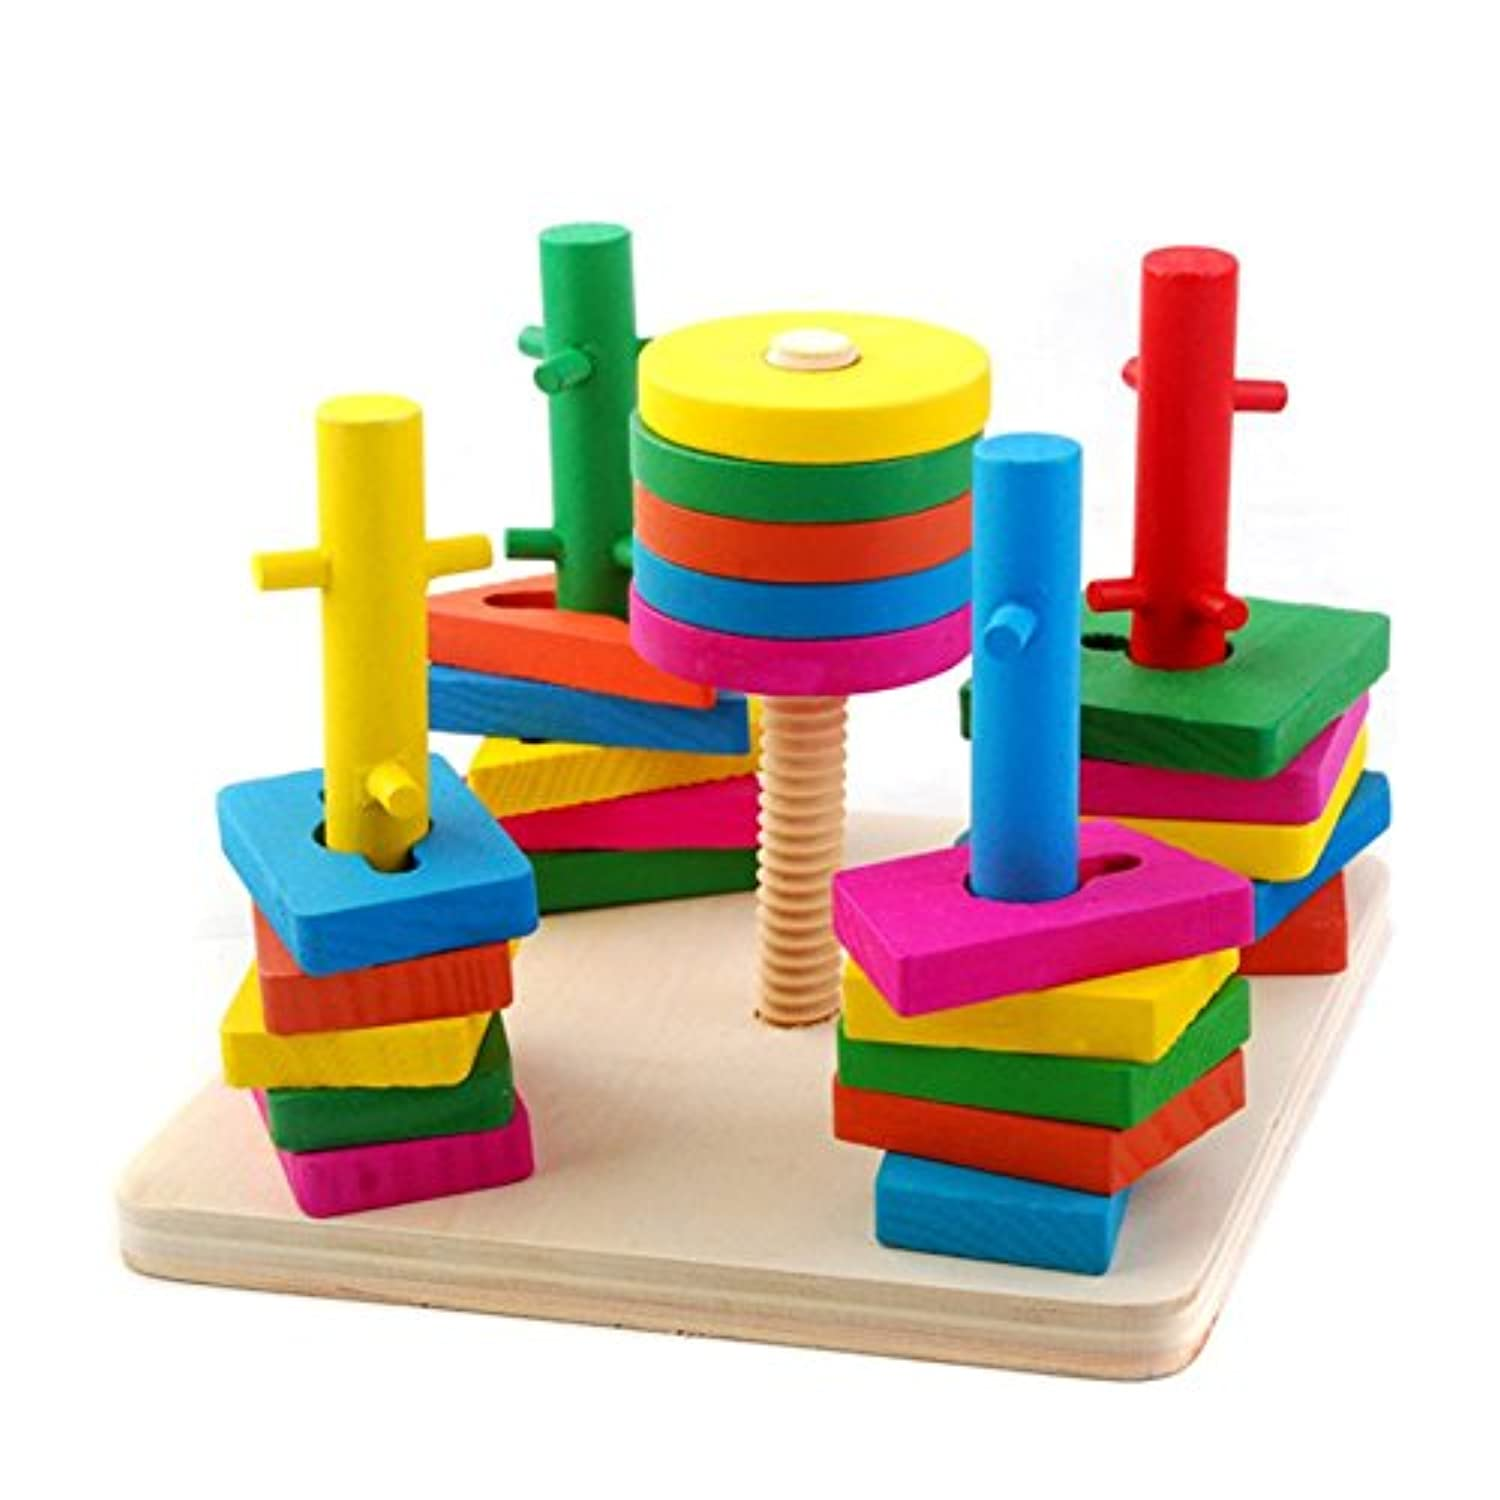 ANONE 25PCS Wooden Educational Sorting Stacking Toys Geometric Board Block Shapes Baby Learn Colour And Shape For Kids